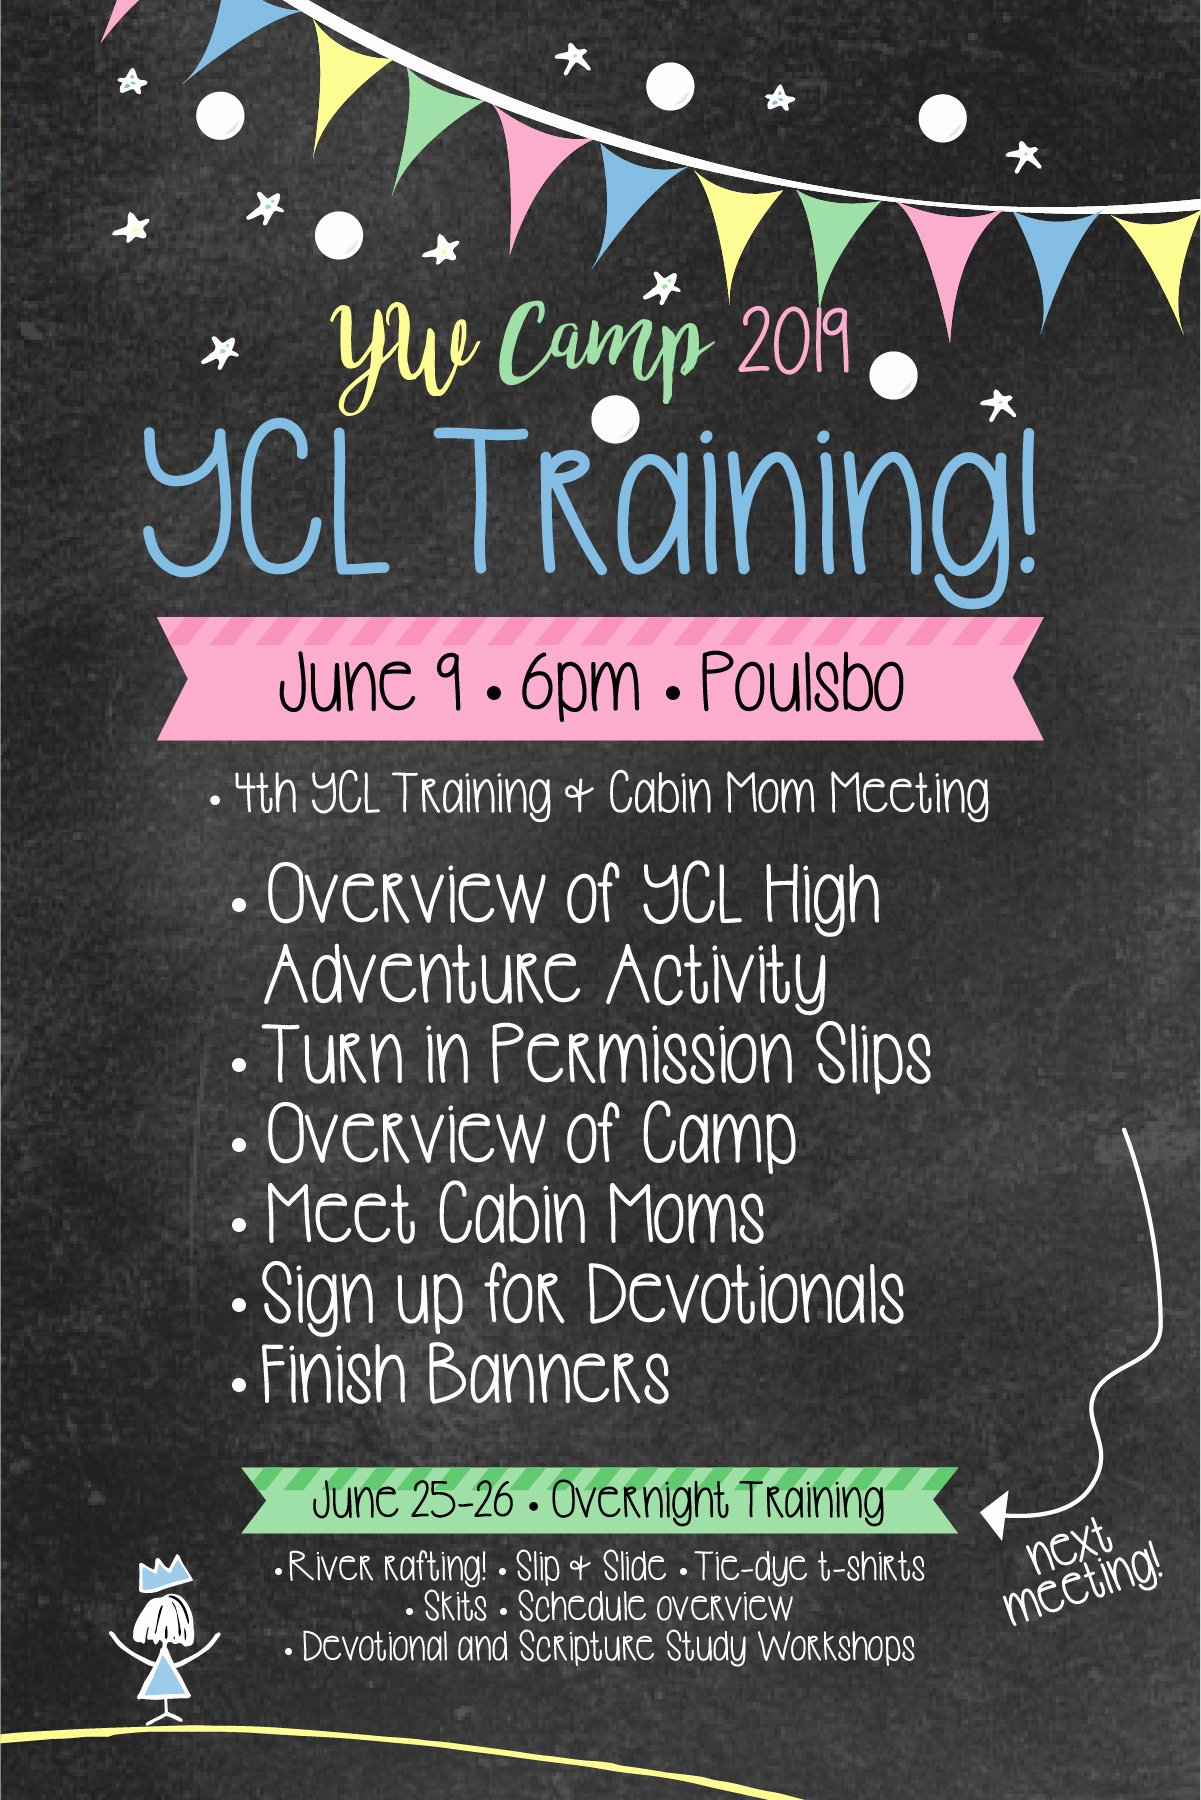 Lds Youth Permission Slip Fresh Ycl Training • June 9